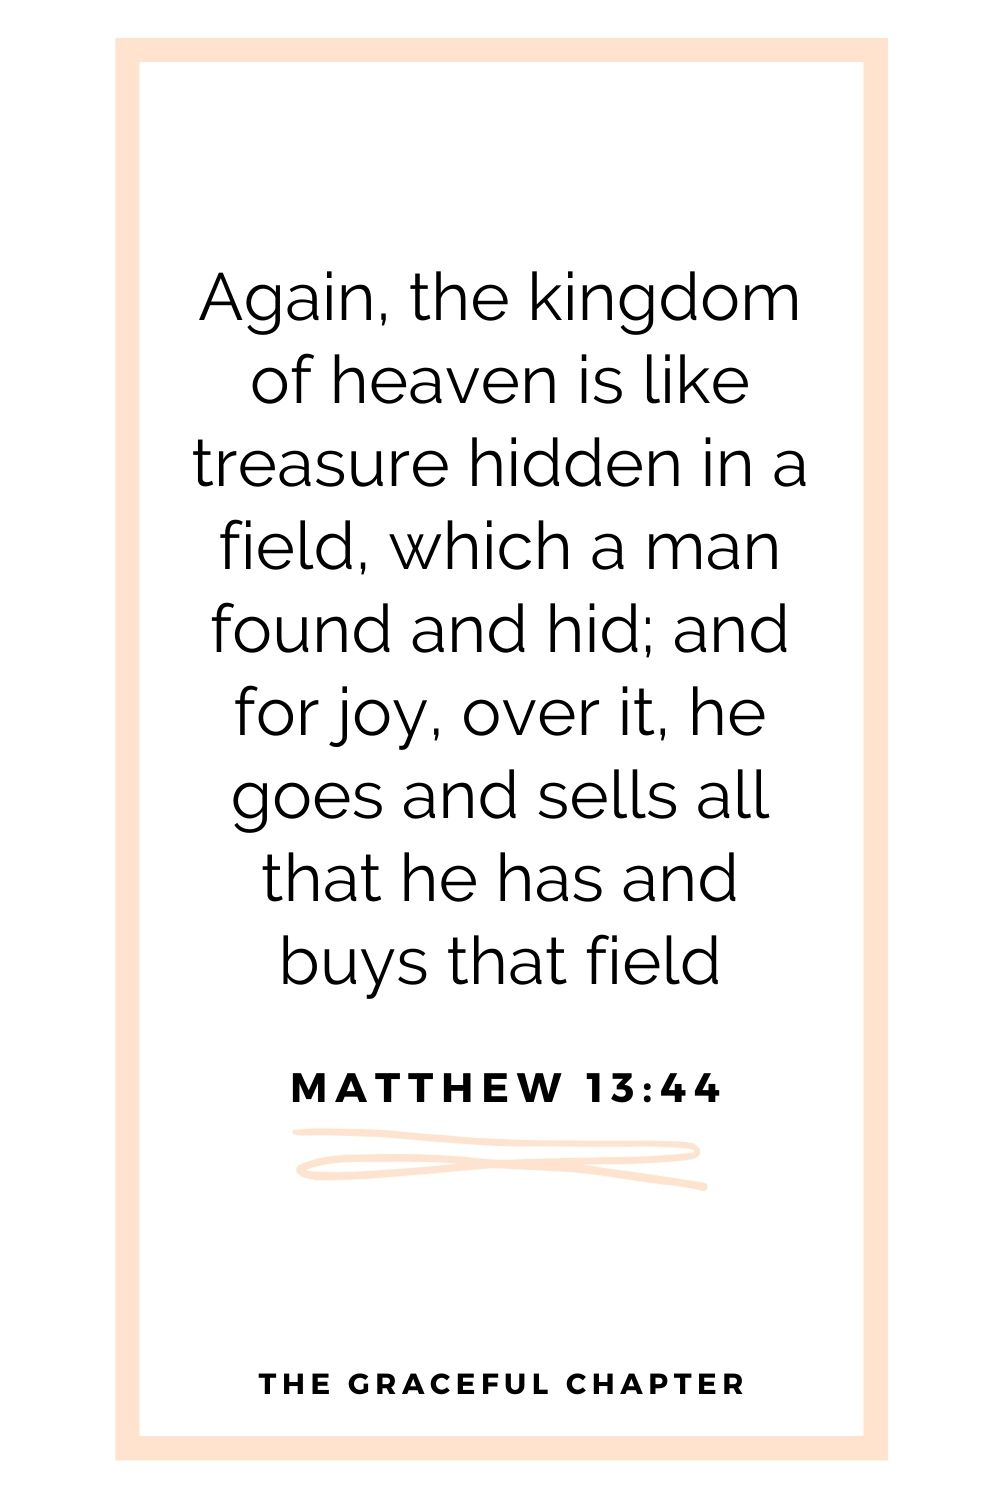 Again, the kingdom of heaven is like treasure hidden in a field, which a man found and hid; and for joy over it he goes and sells all that he has and buys that field Matthew 13:44